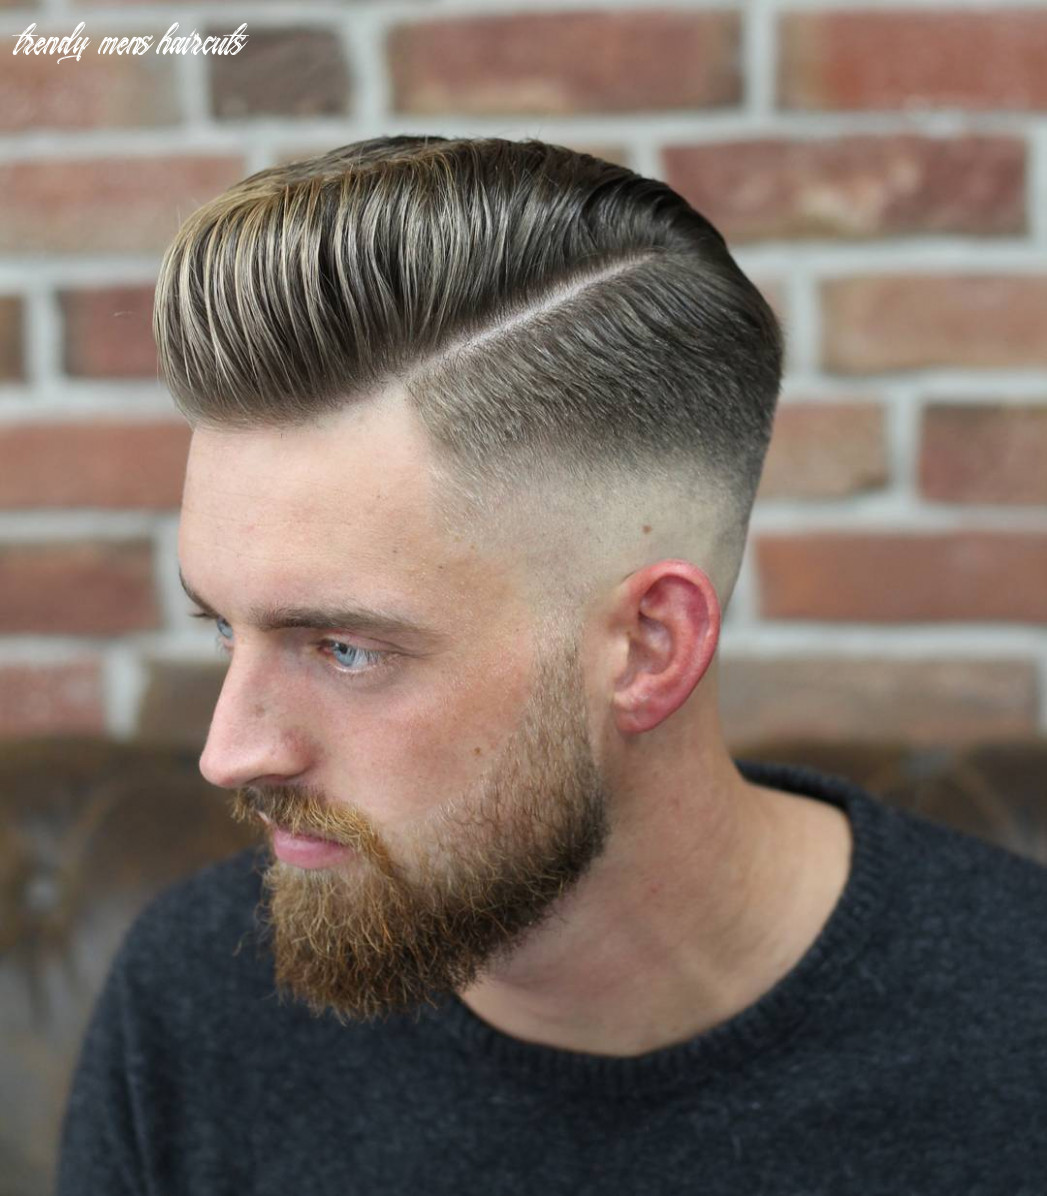 9 cool hairstyles for men (fresh styles) trendy mens haircuts